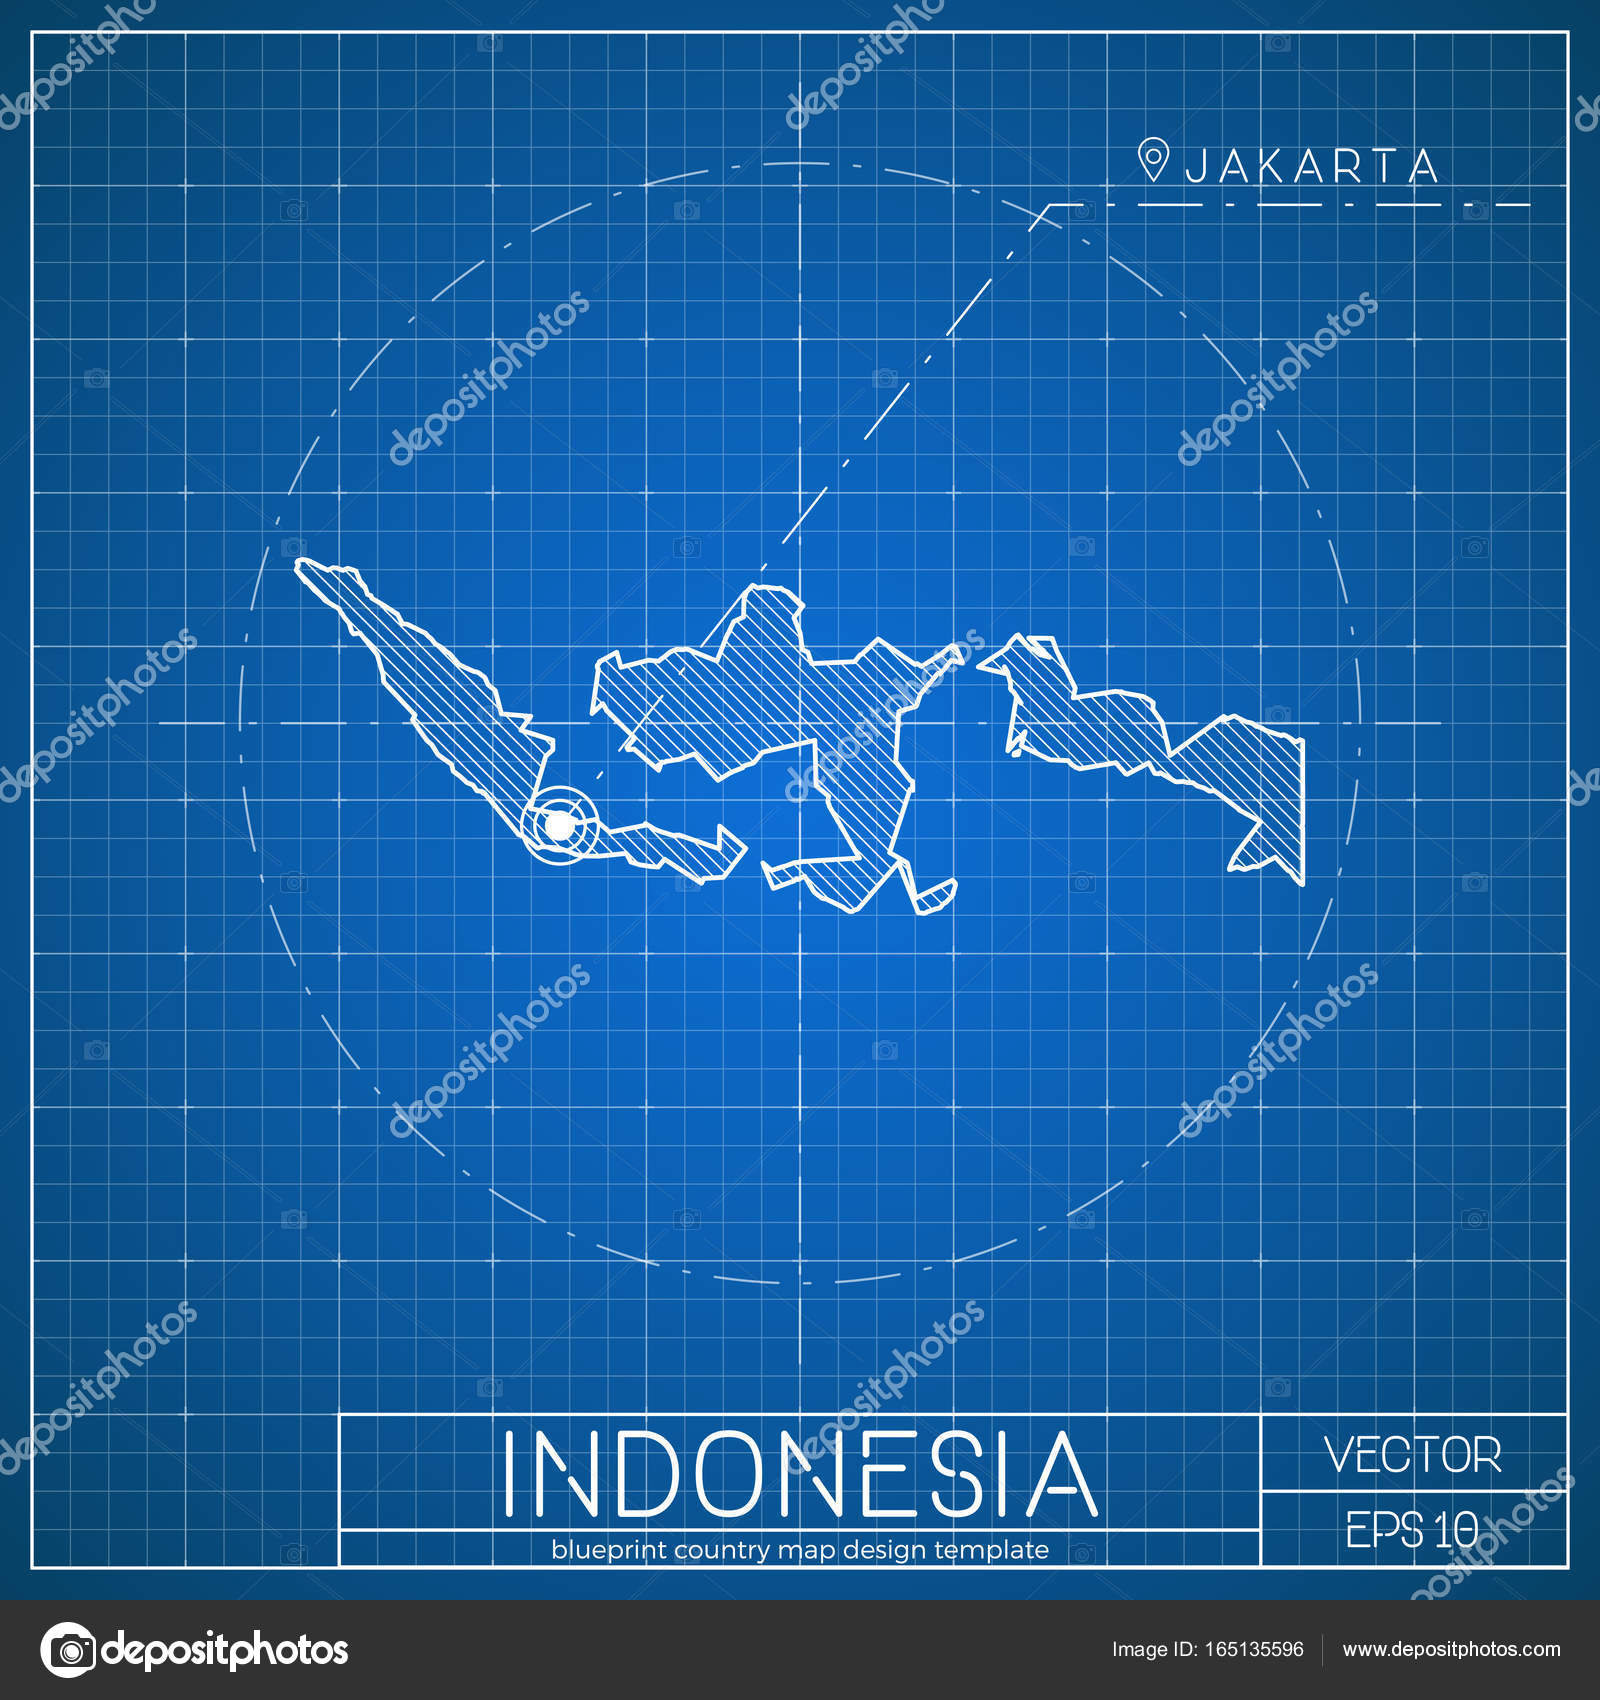 Indonesia blueprint map template with capital city jakarta marked on indonesia blueprint map template with capital city jakarta marked on blueprint indonesian map stock vector freerunsca Gallery